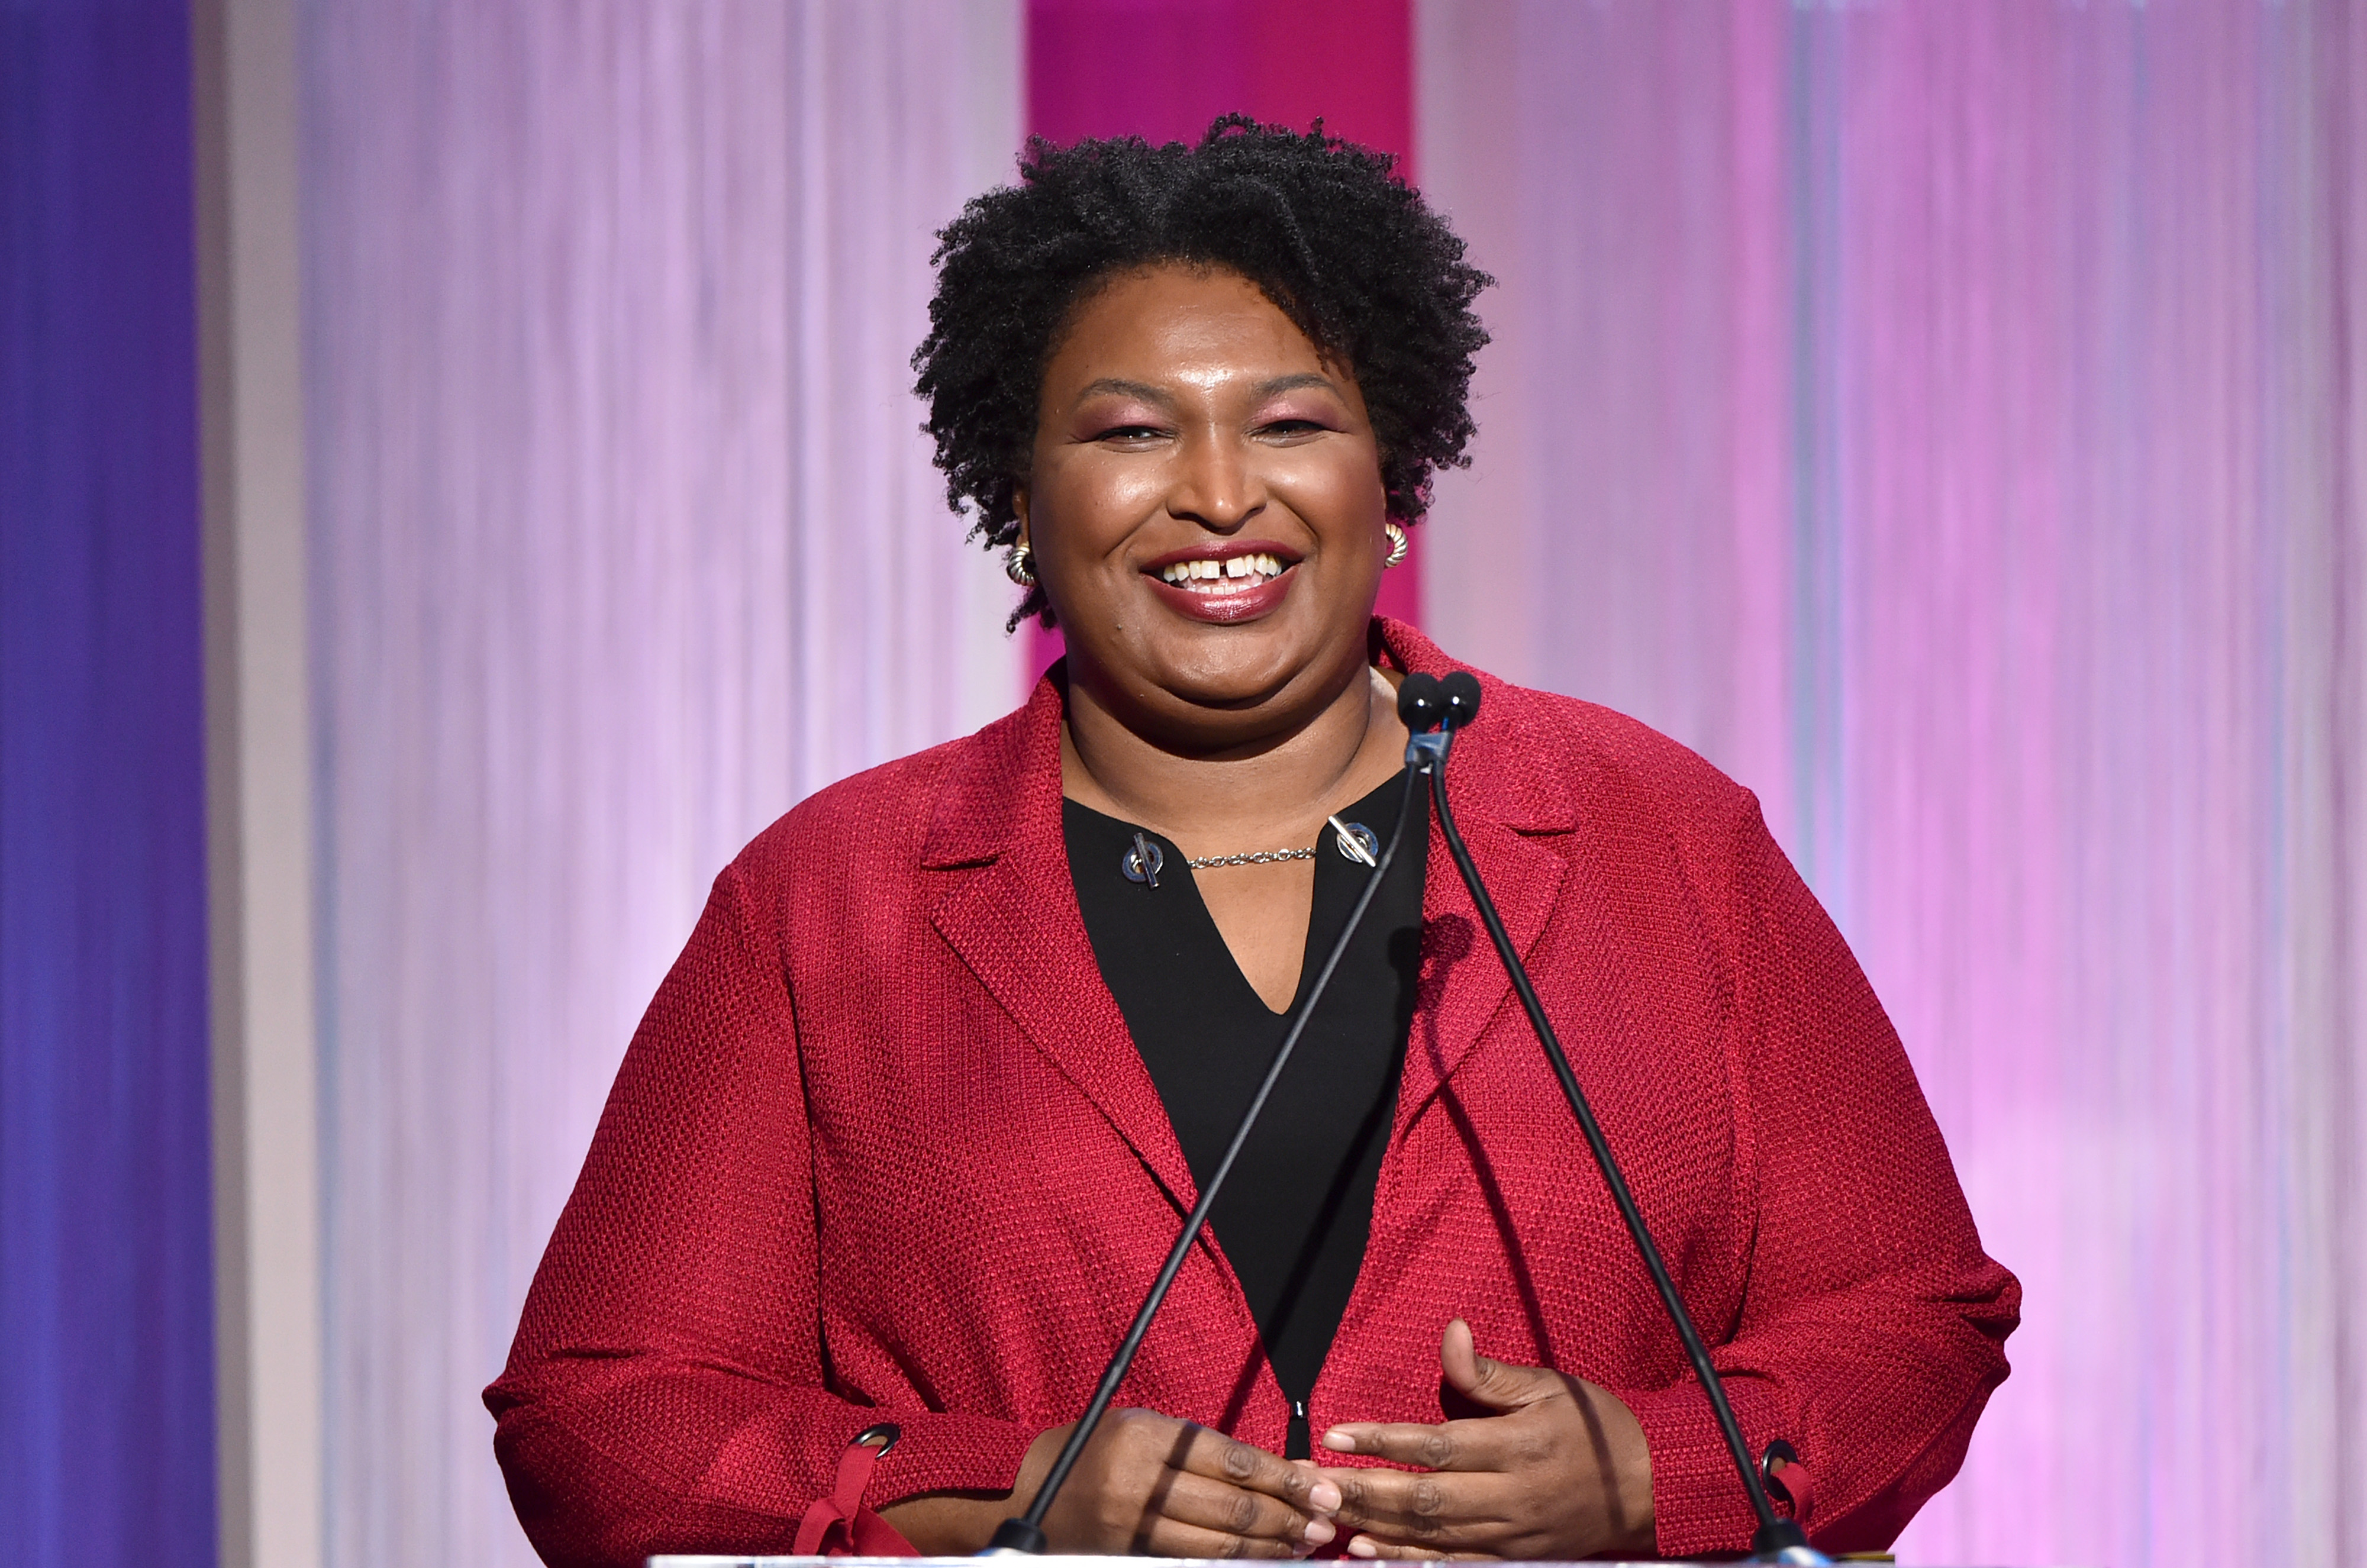 Stacey Abrams Writing Book on Voter Suppression